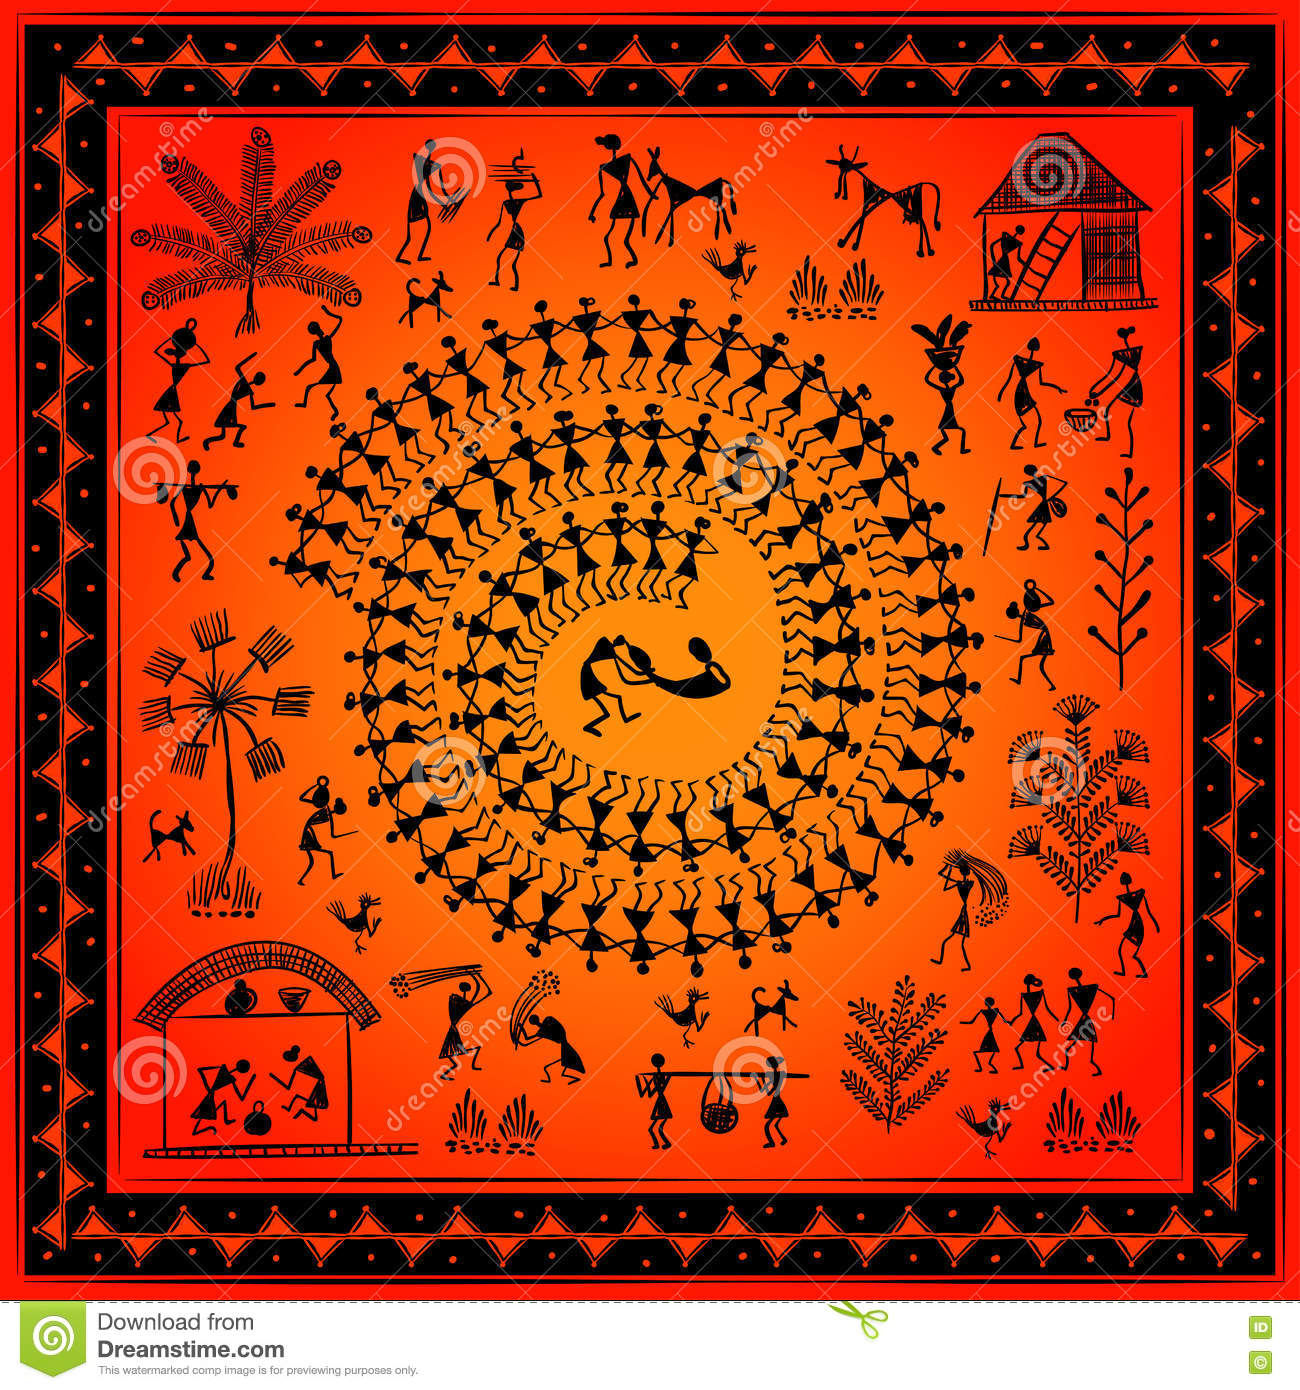 dbd7935f67b03 Warli peynting - hand drawn traditional the ancient tribal art India.  Pictorial language is matched by a rudimentary technique depicting rural  life of the ...